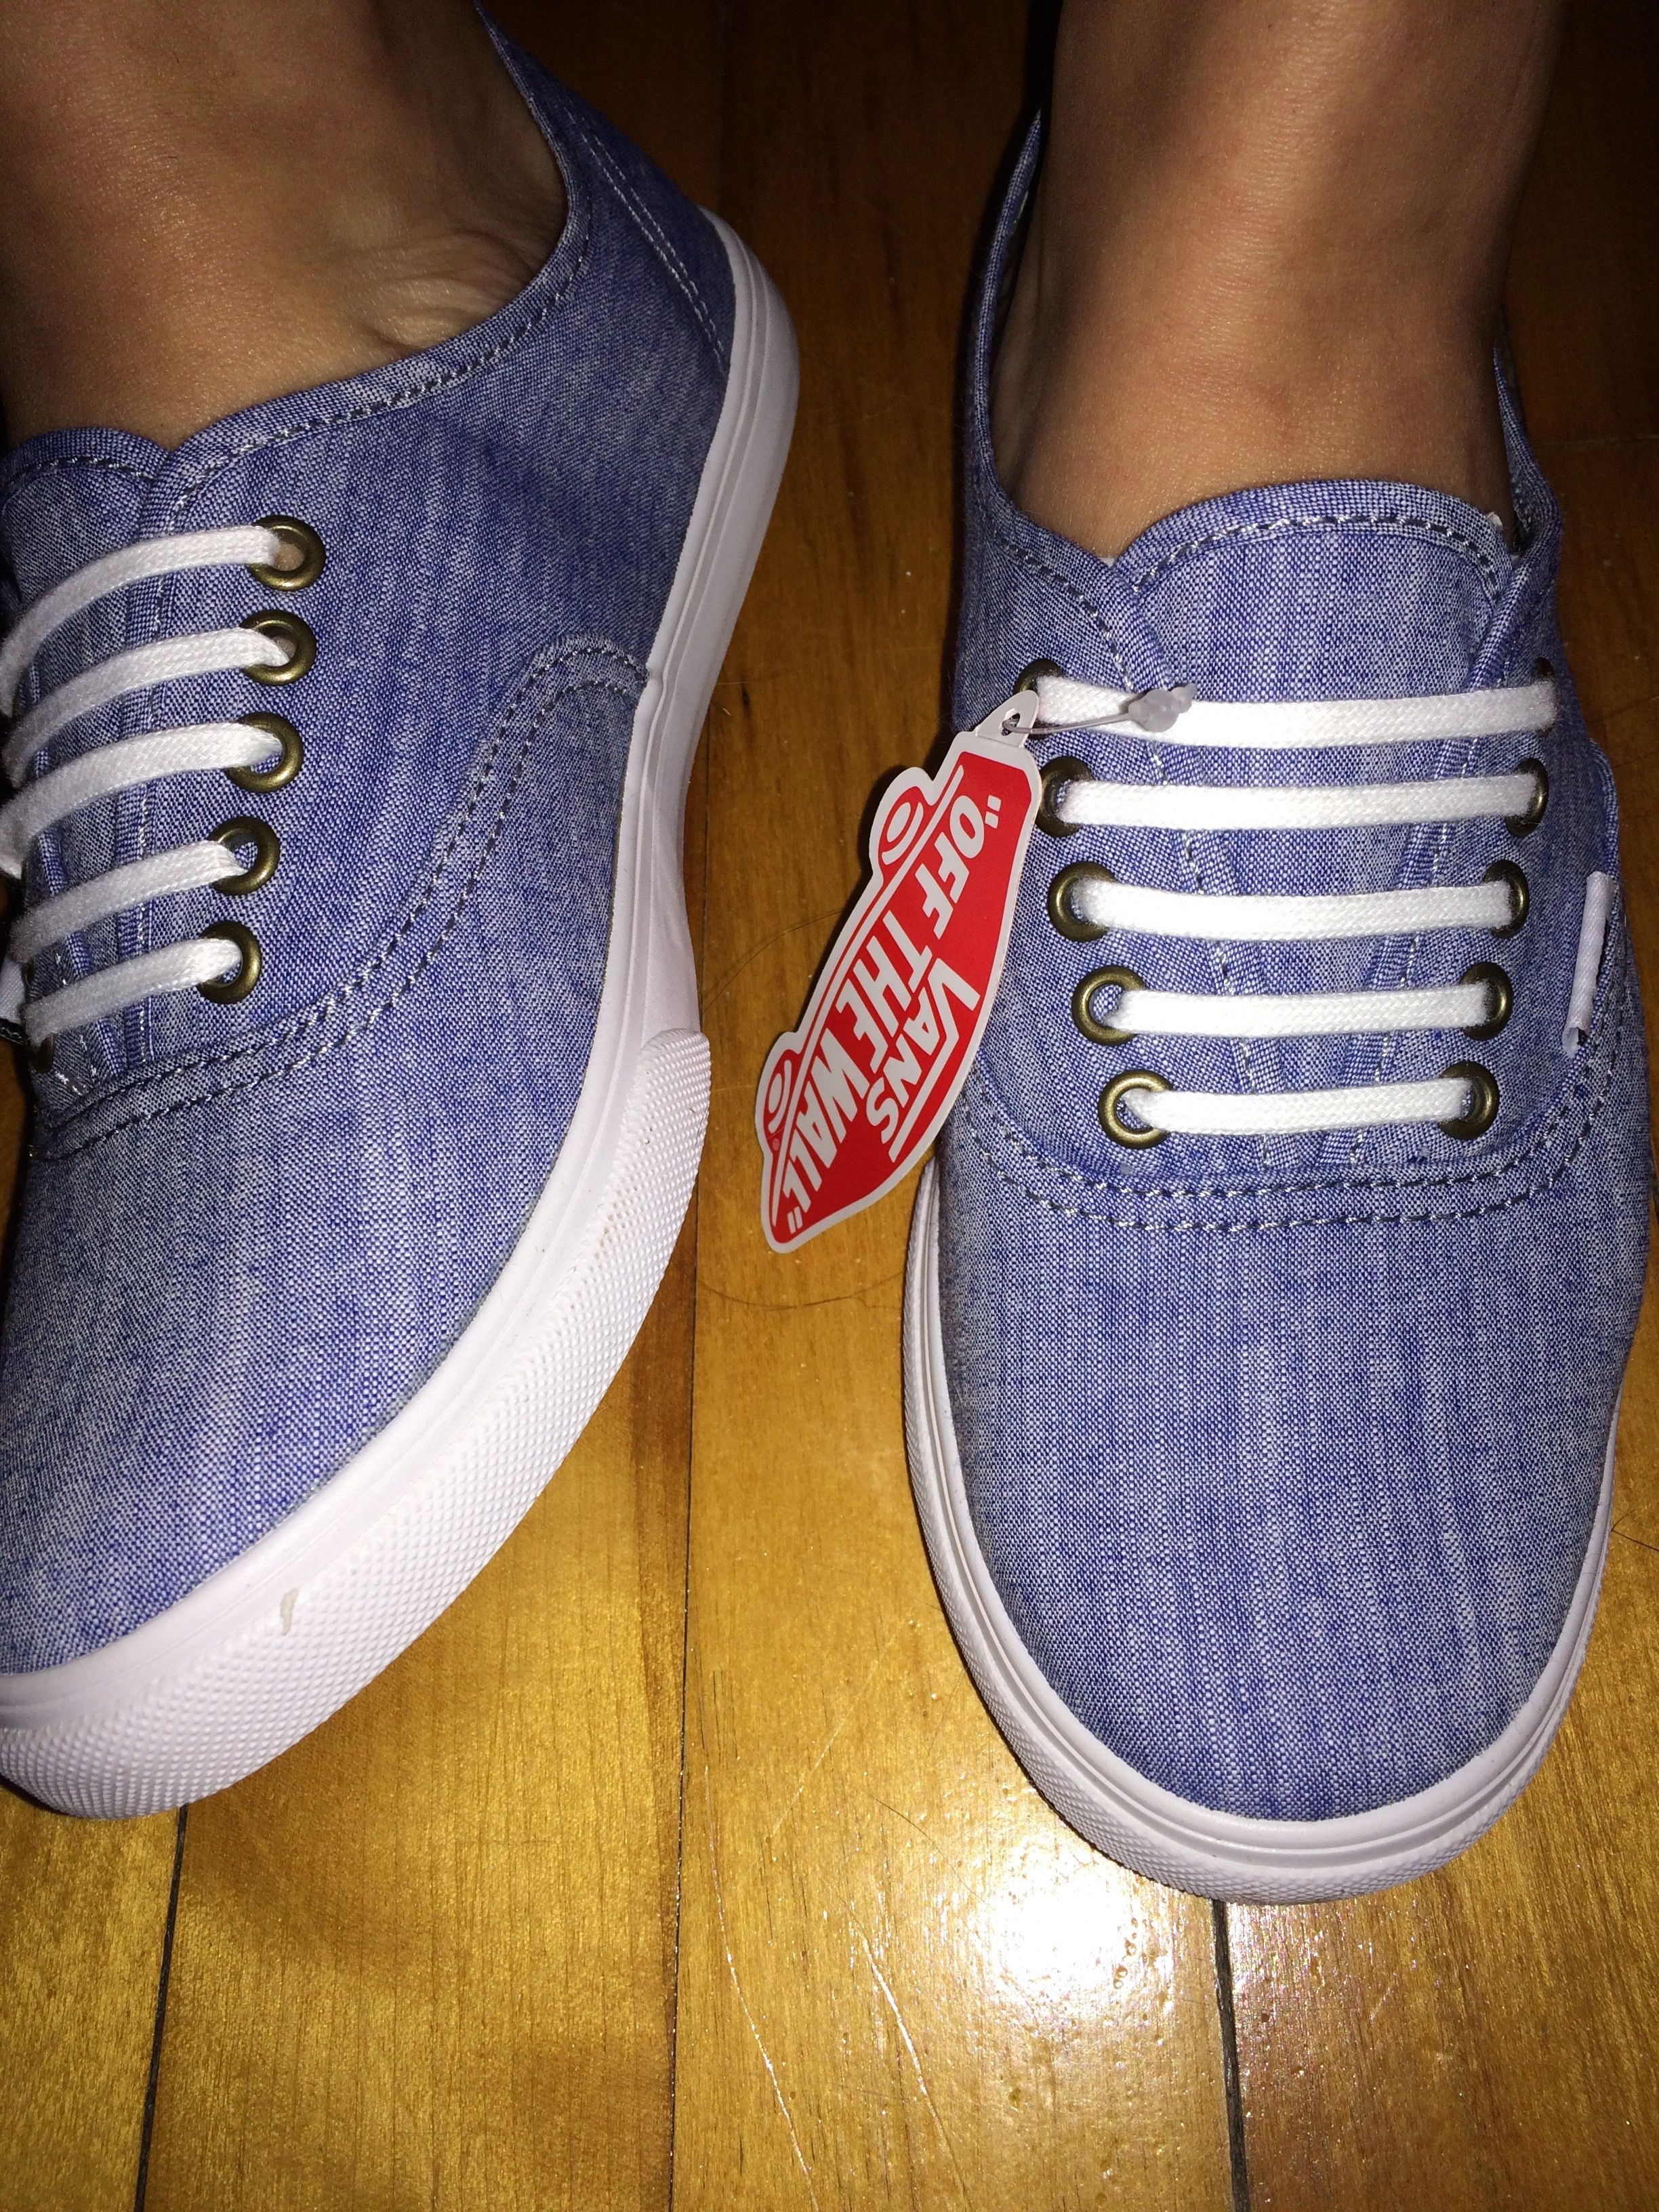 944b8b3be0e7 Vans - Floral Chambray Authentic Lo Pro